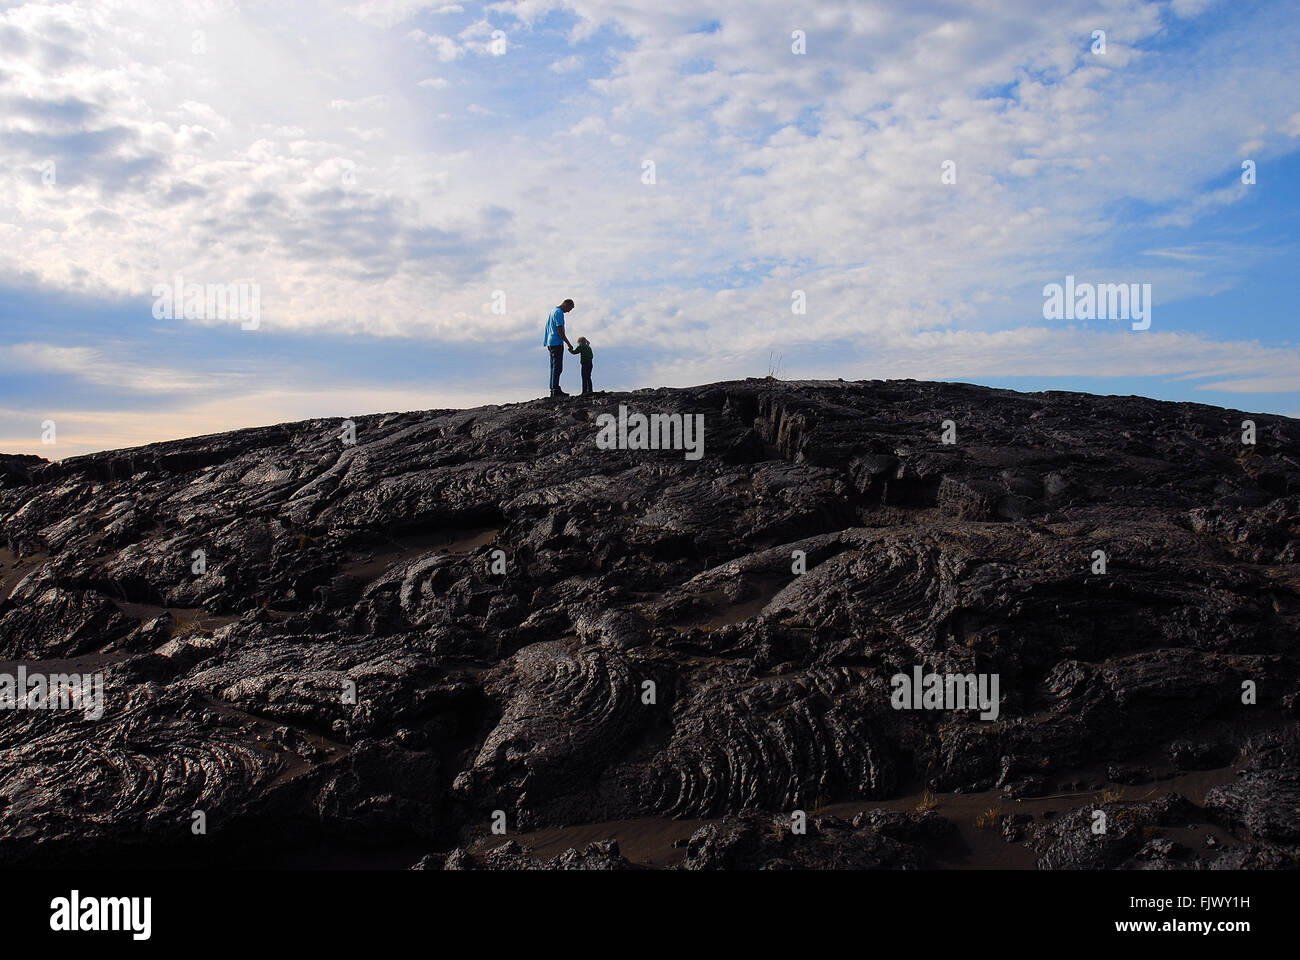 Low Angle View Of Child And Father Standing On Mountain Against Cloudy Sky - Stock Image